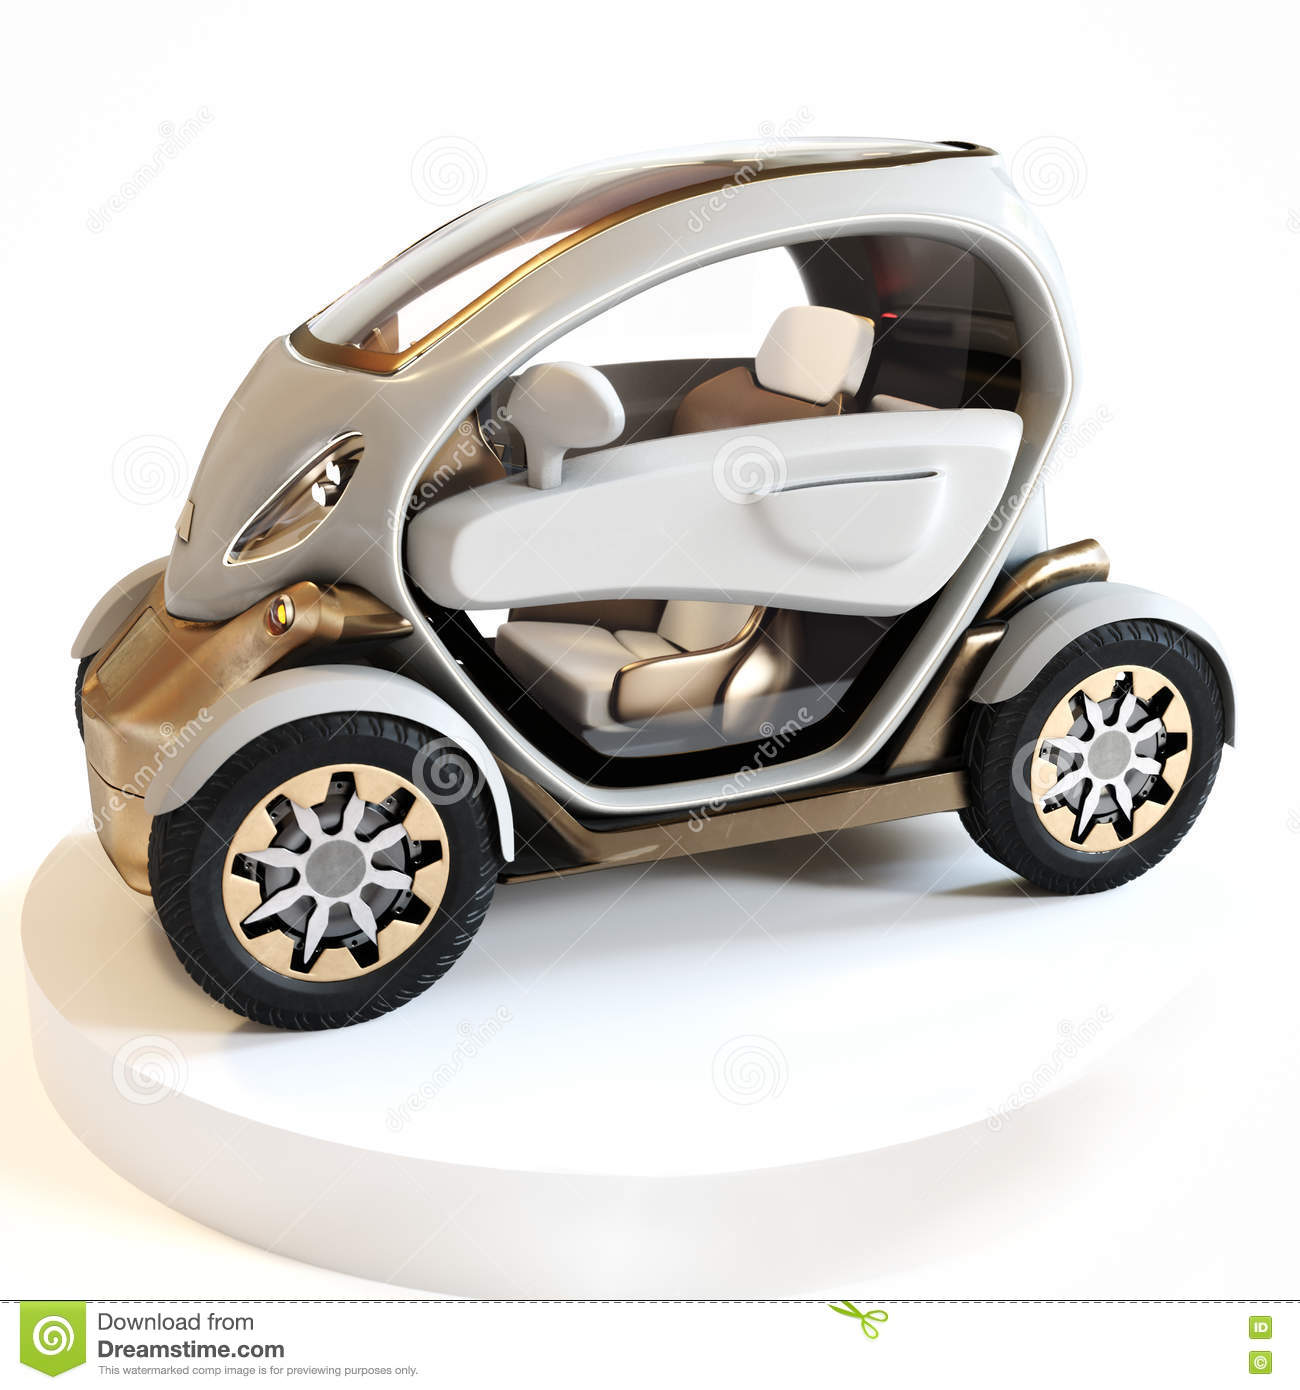 futuristic personal concept car on display with a white background